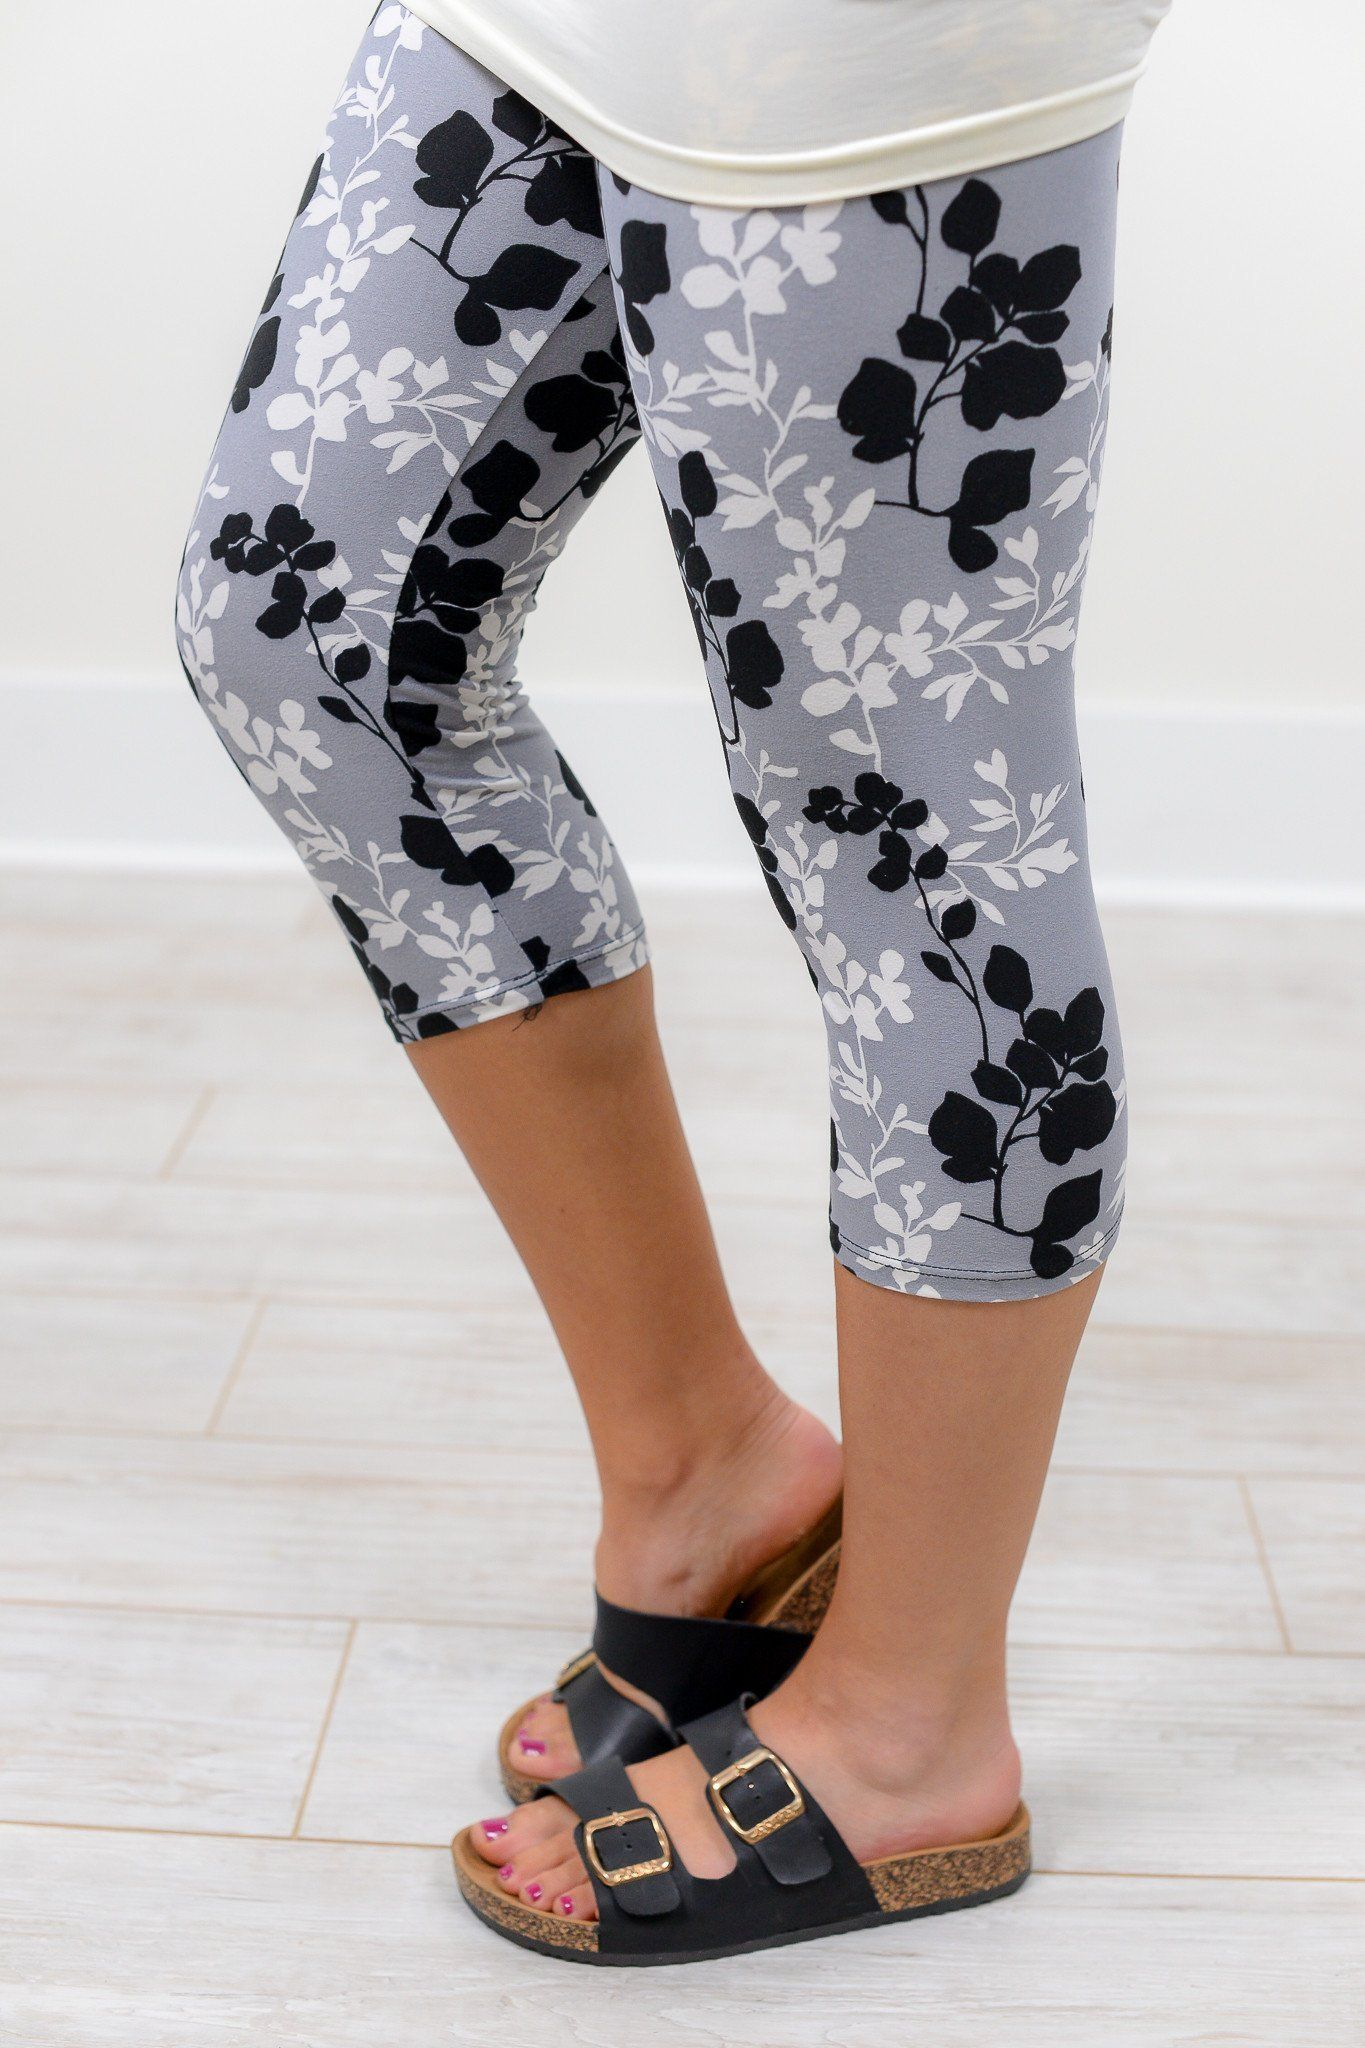 Gray Floral Capri Printed Leggings (Sizes 4-12) - LEG1133GR